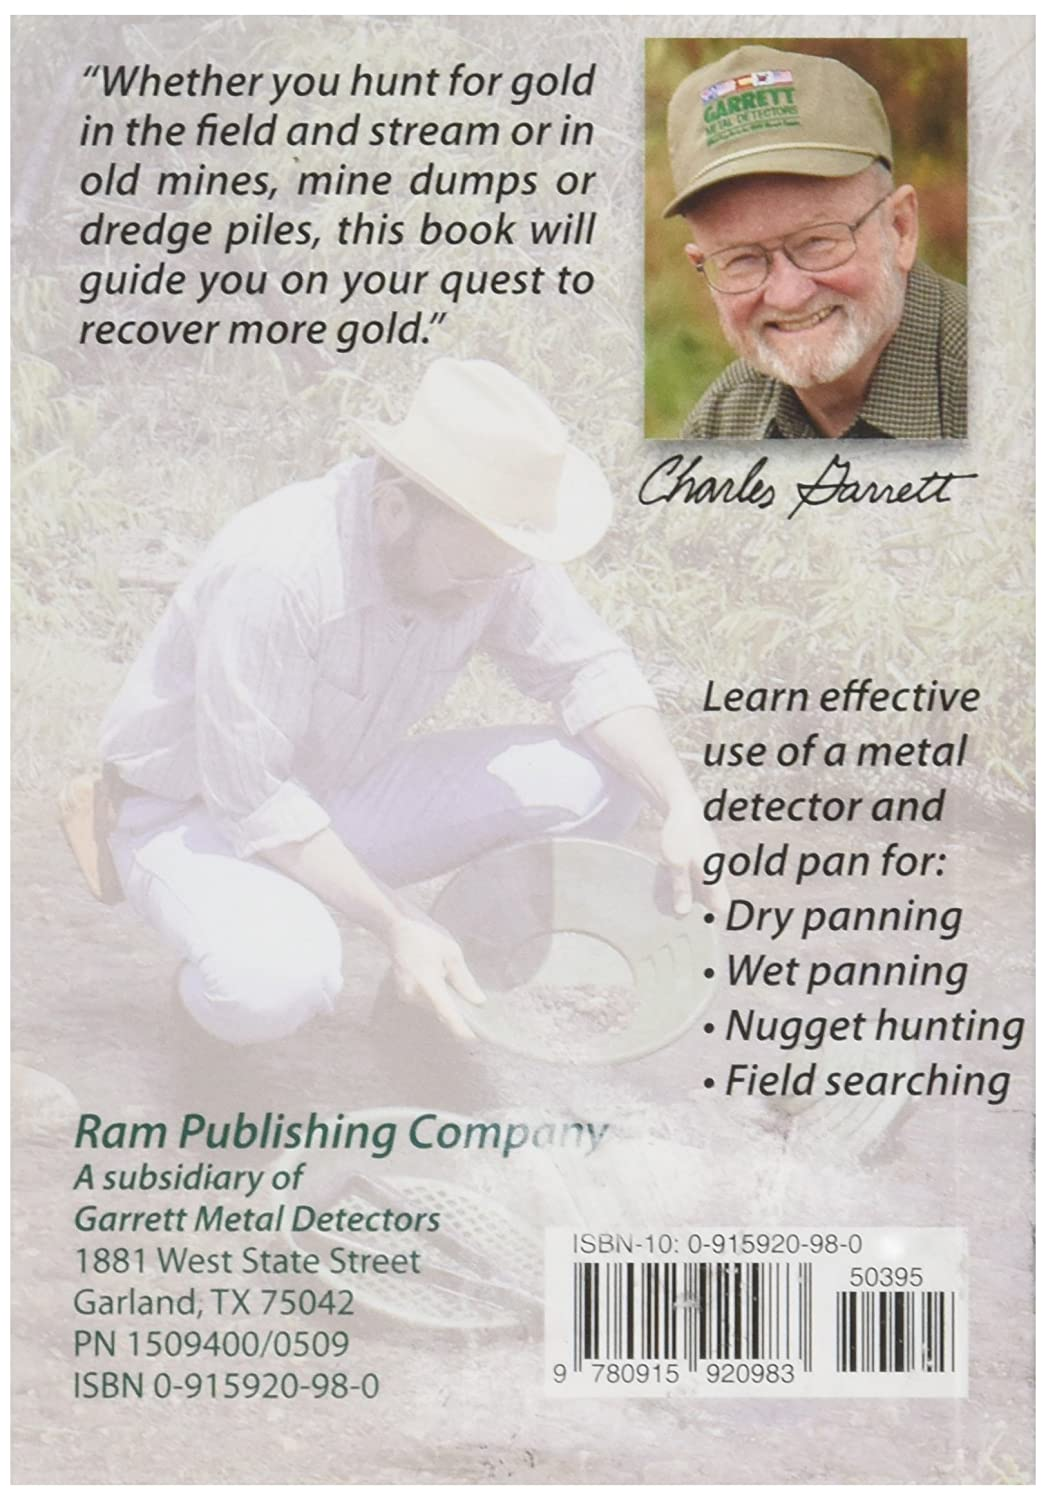 Amazon.com: How to Find Gold: Metal Detecting & Panning: Garden & Outdoor